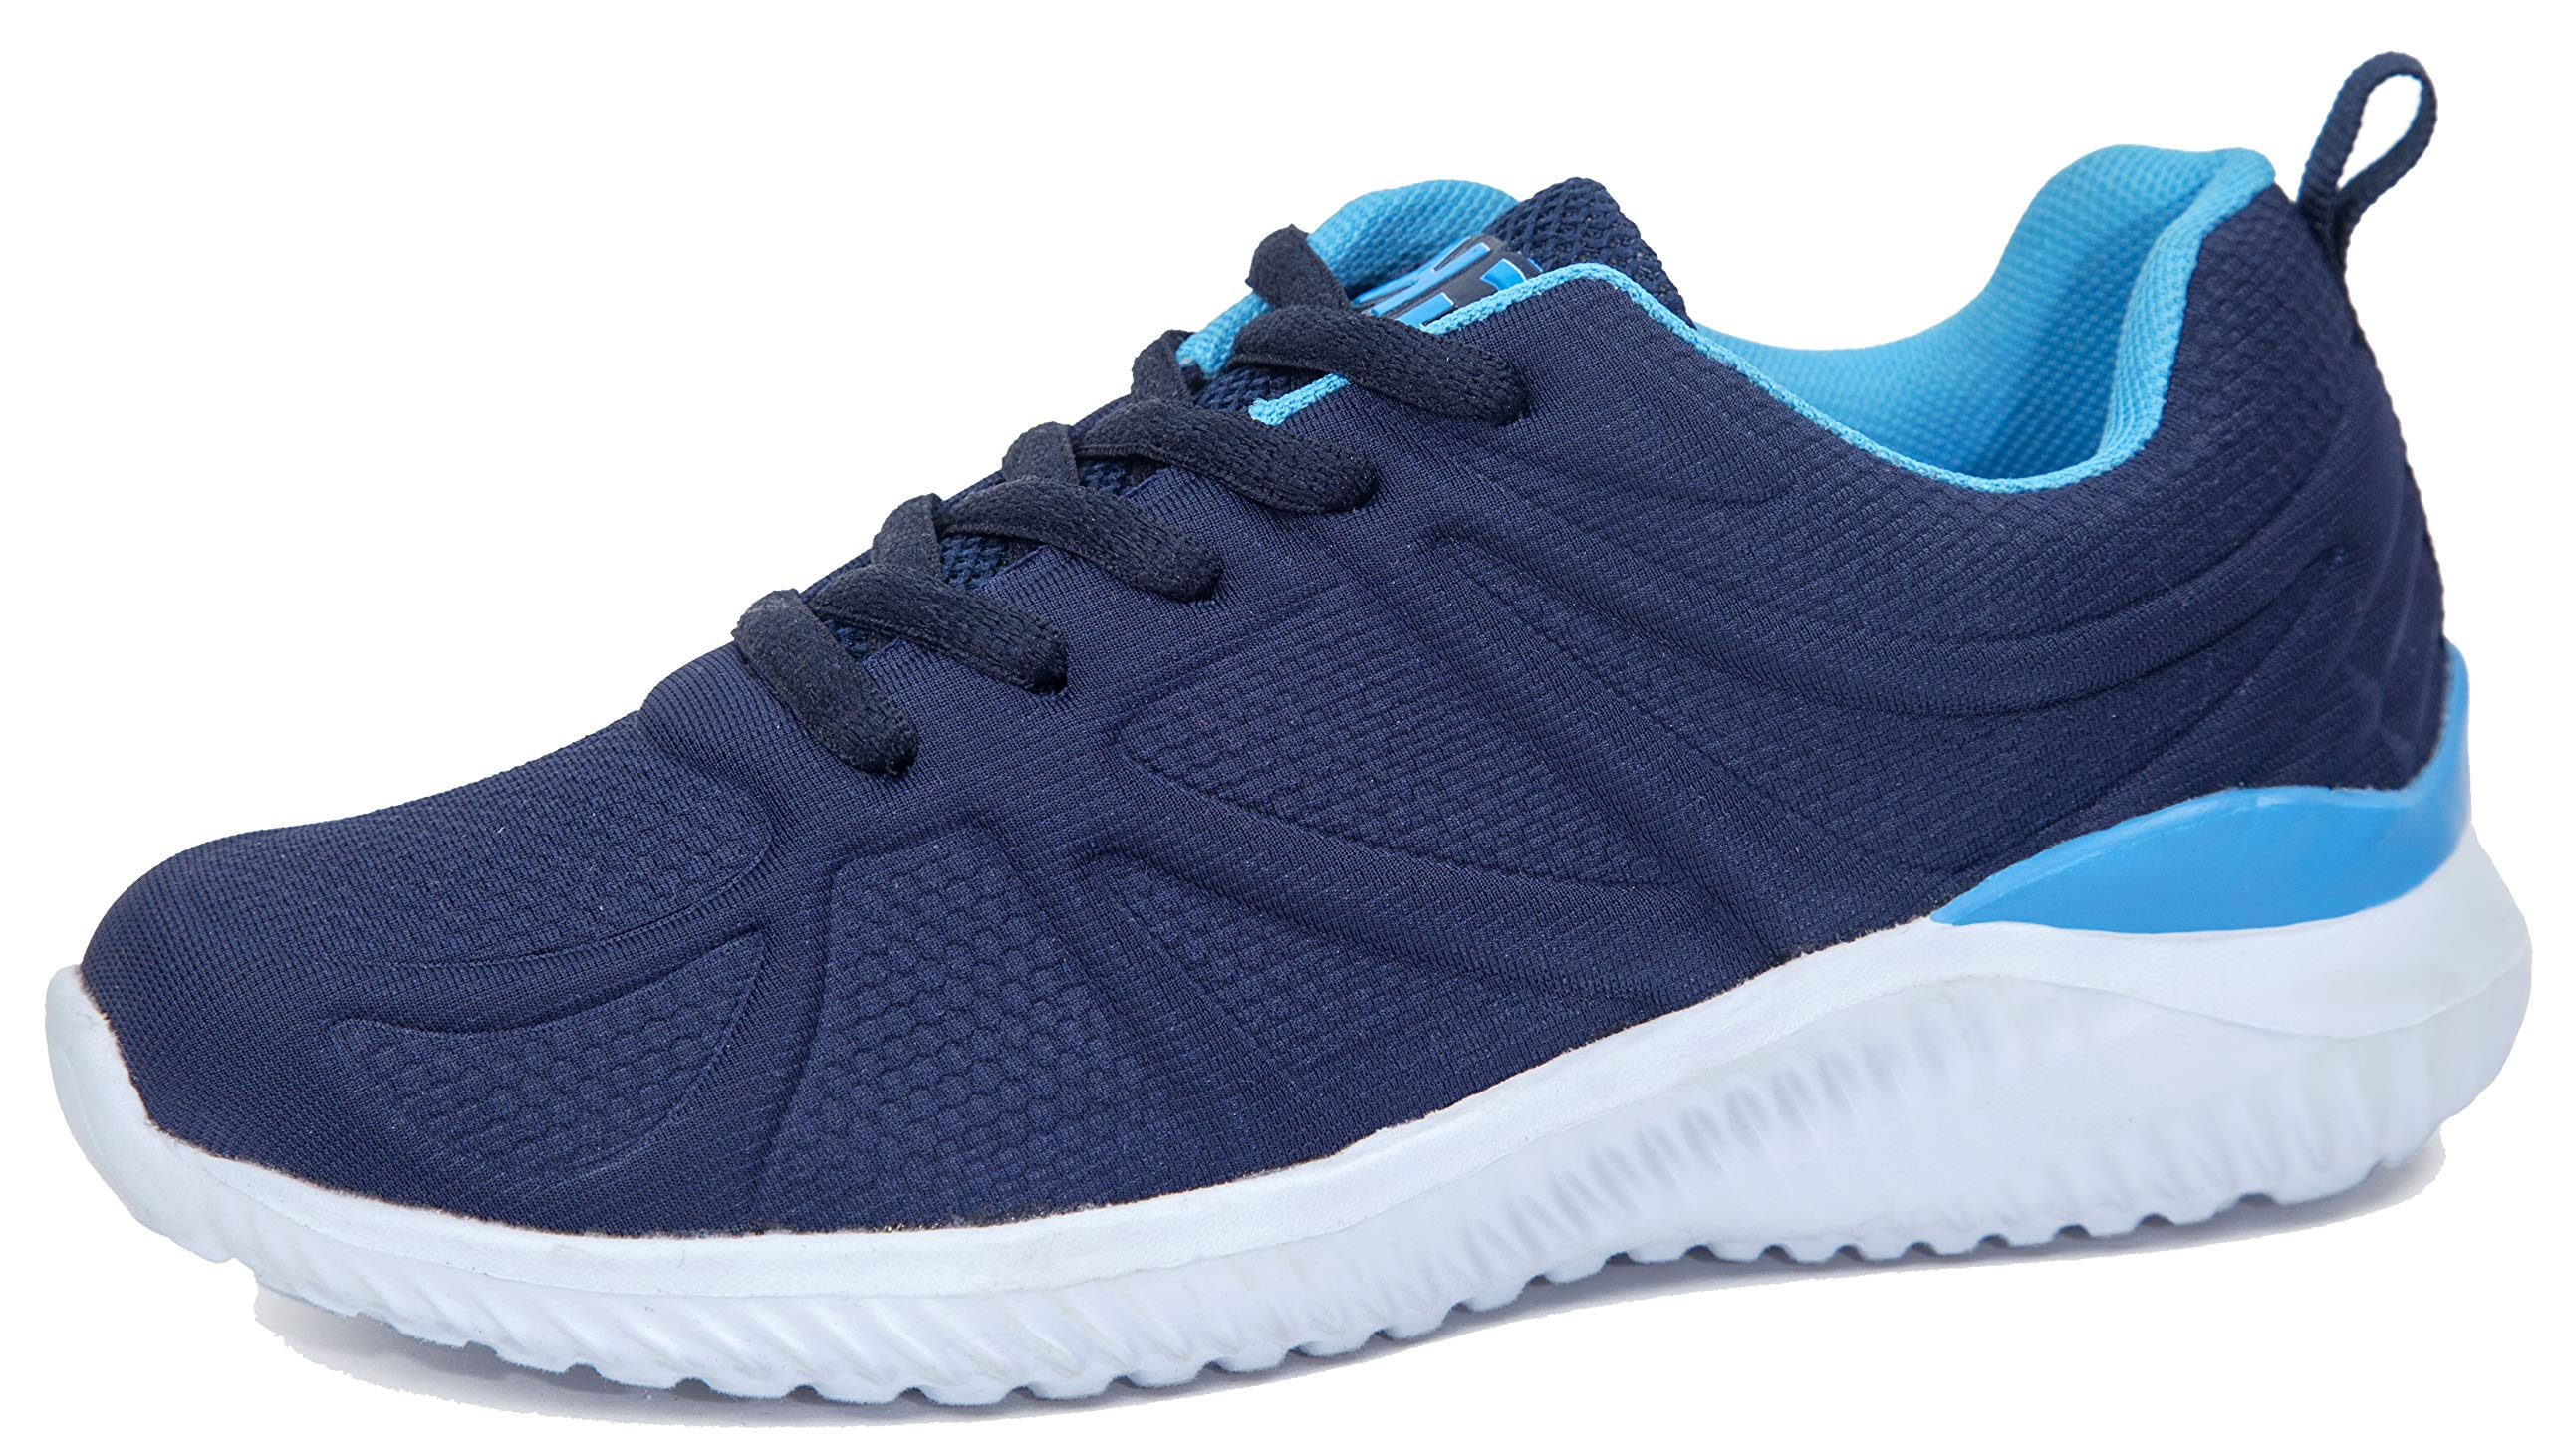 Kids Athletic Tennis Shoes - Little Kid Sneakers with Girl and Boy Sizes Teal/Blue by Gimbo Kids